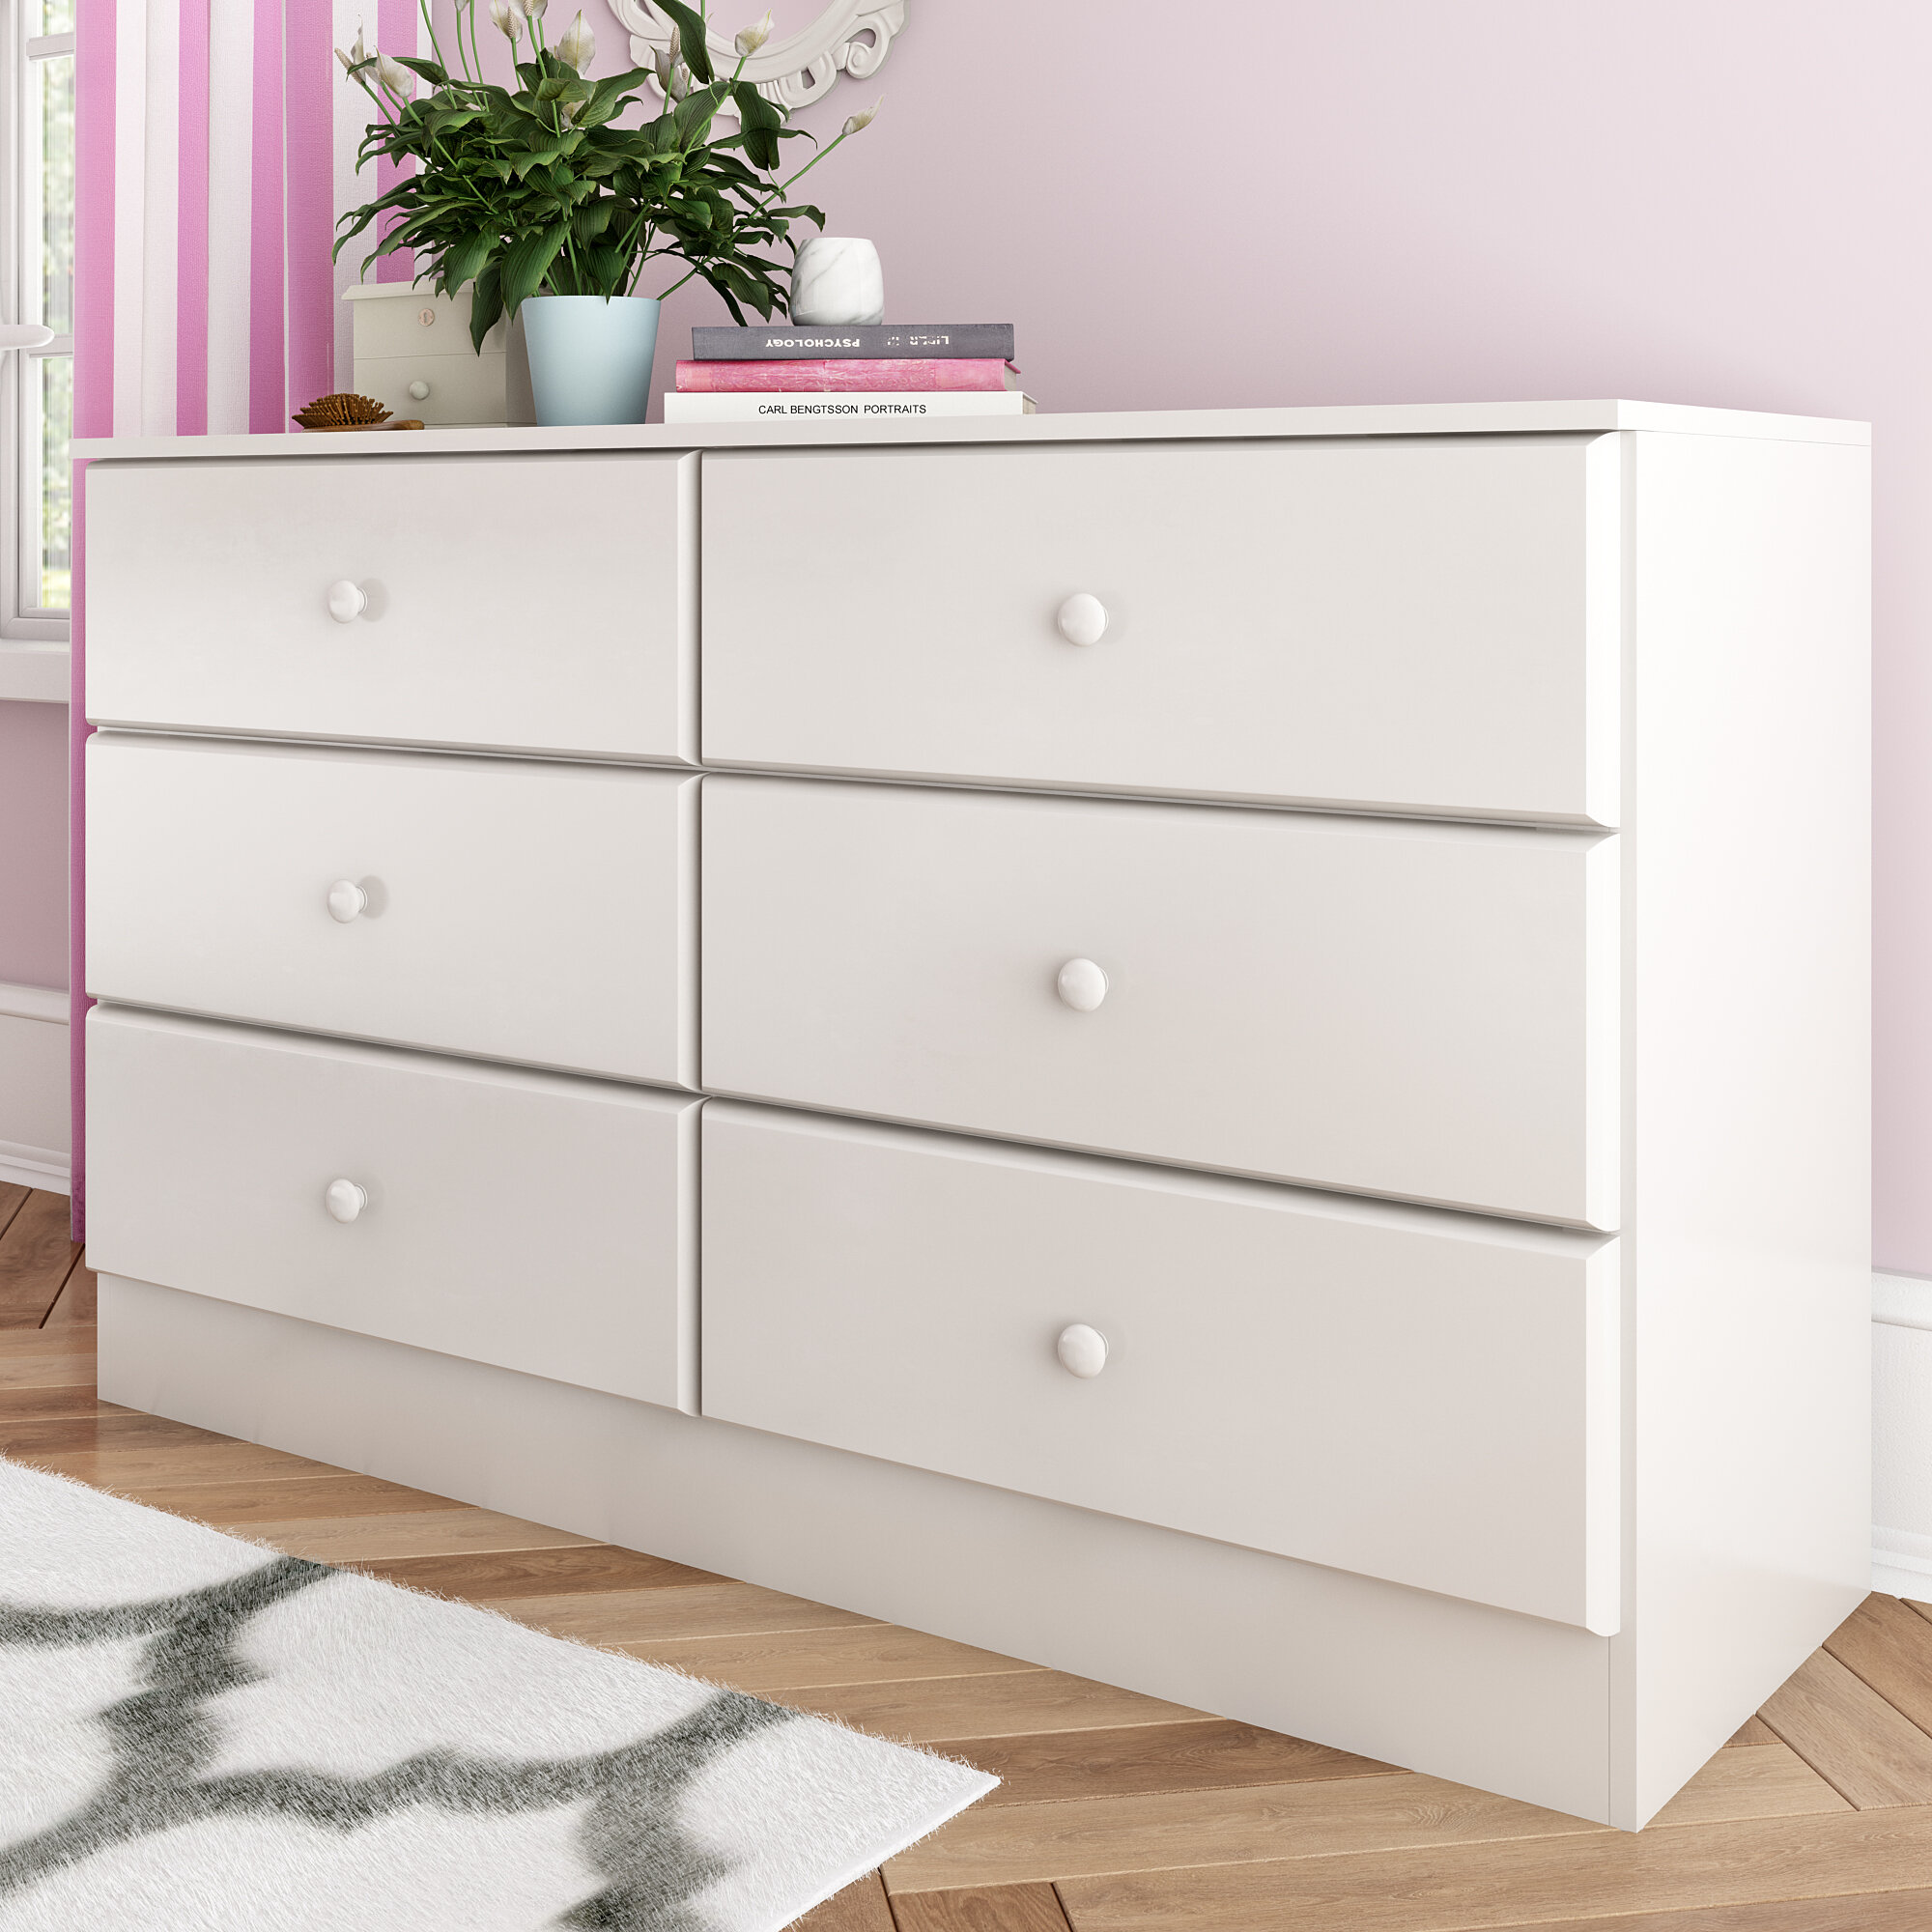 furniturehudson and nightstands home mirrored dressers vintage pier furniture country pic goods bombay dresser bedroom blog